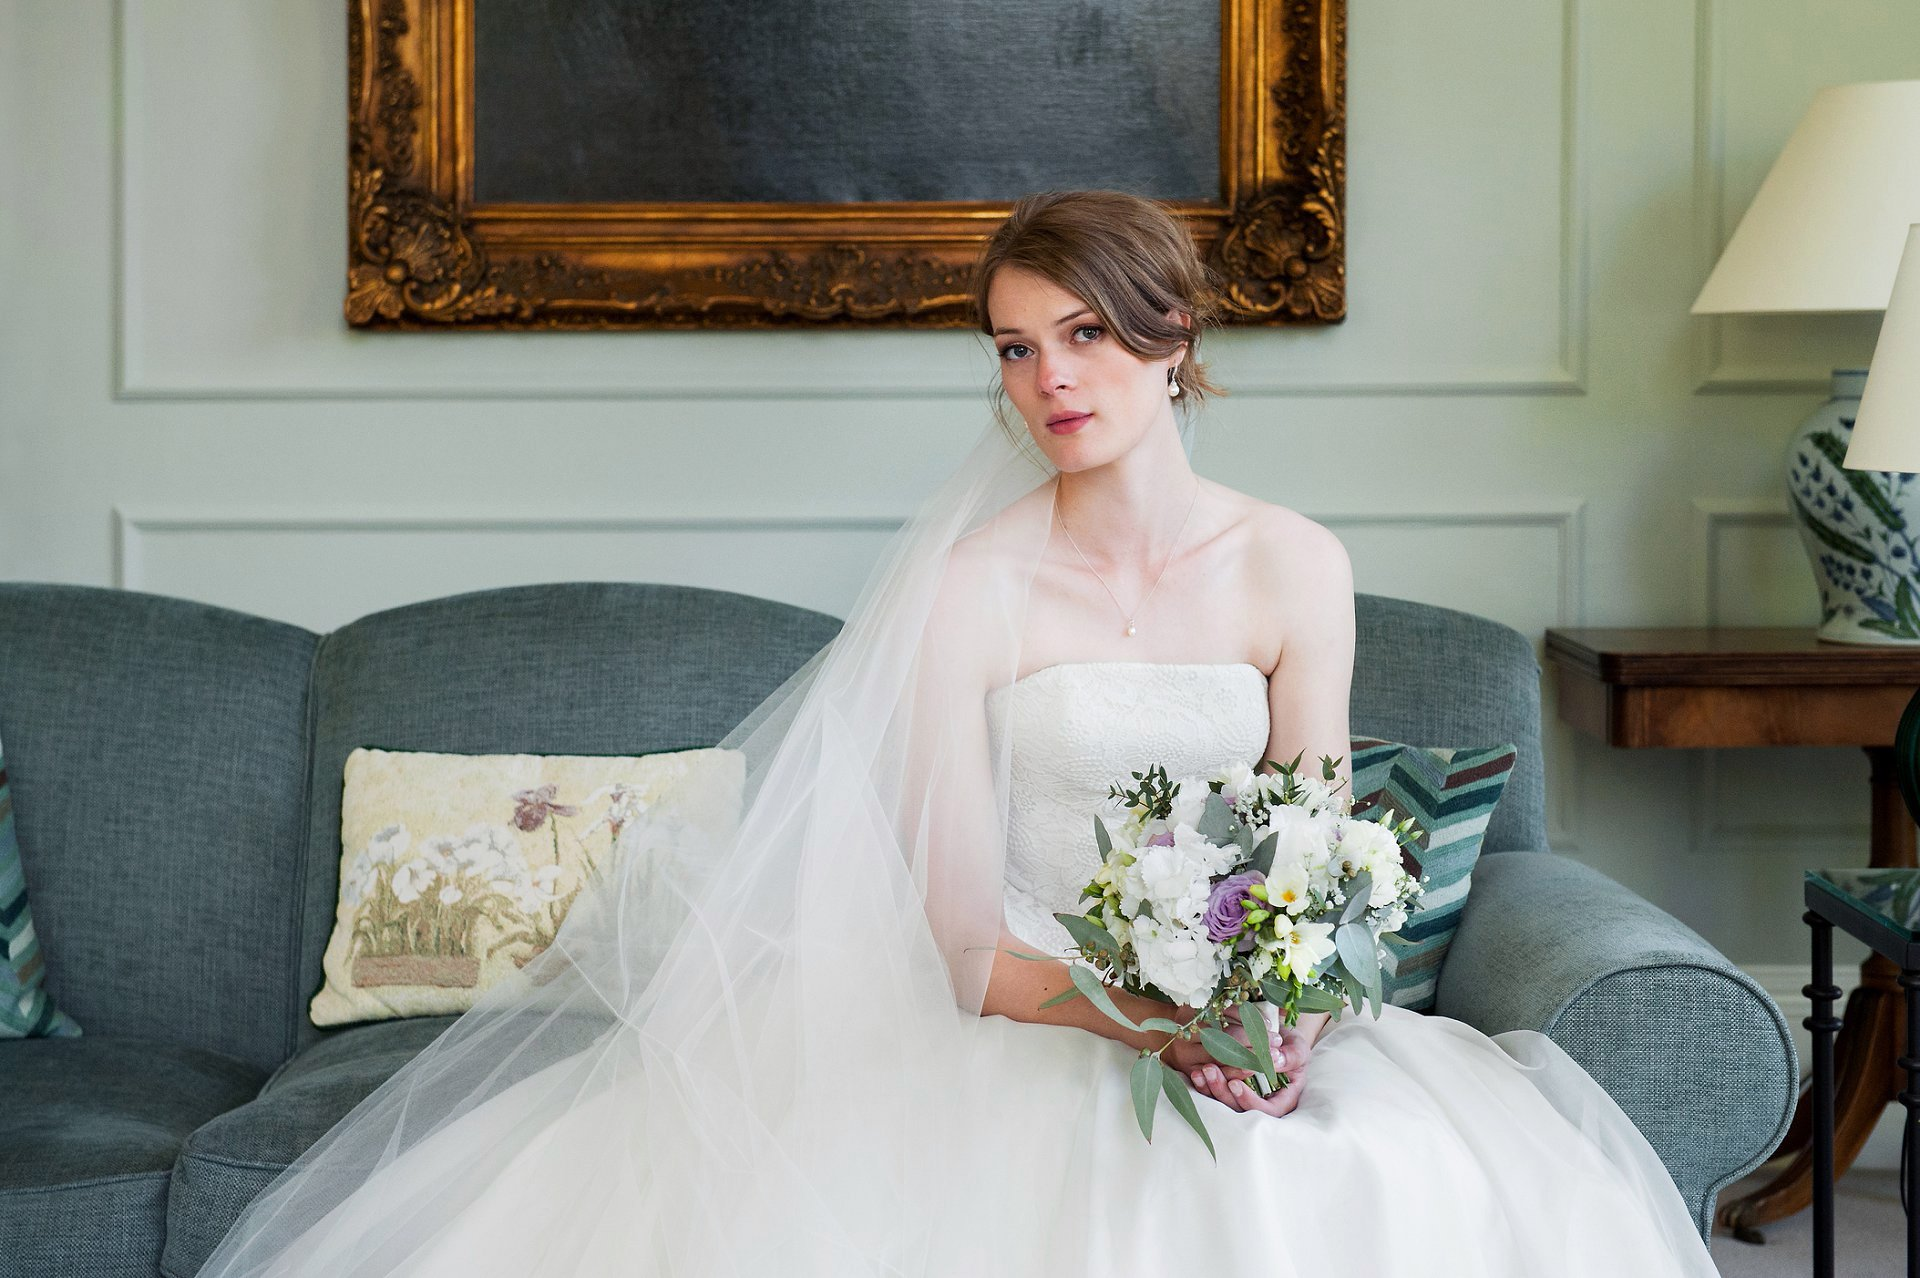 Starborough Manor Wedding Photographer - bride, Jess, in the drawing room at Starborough Manor on her wedding day